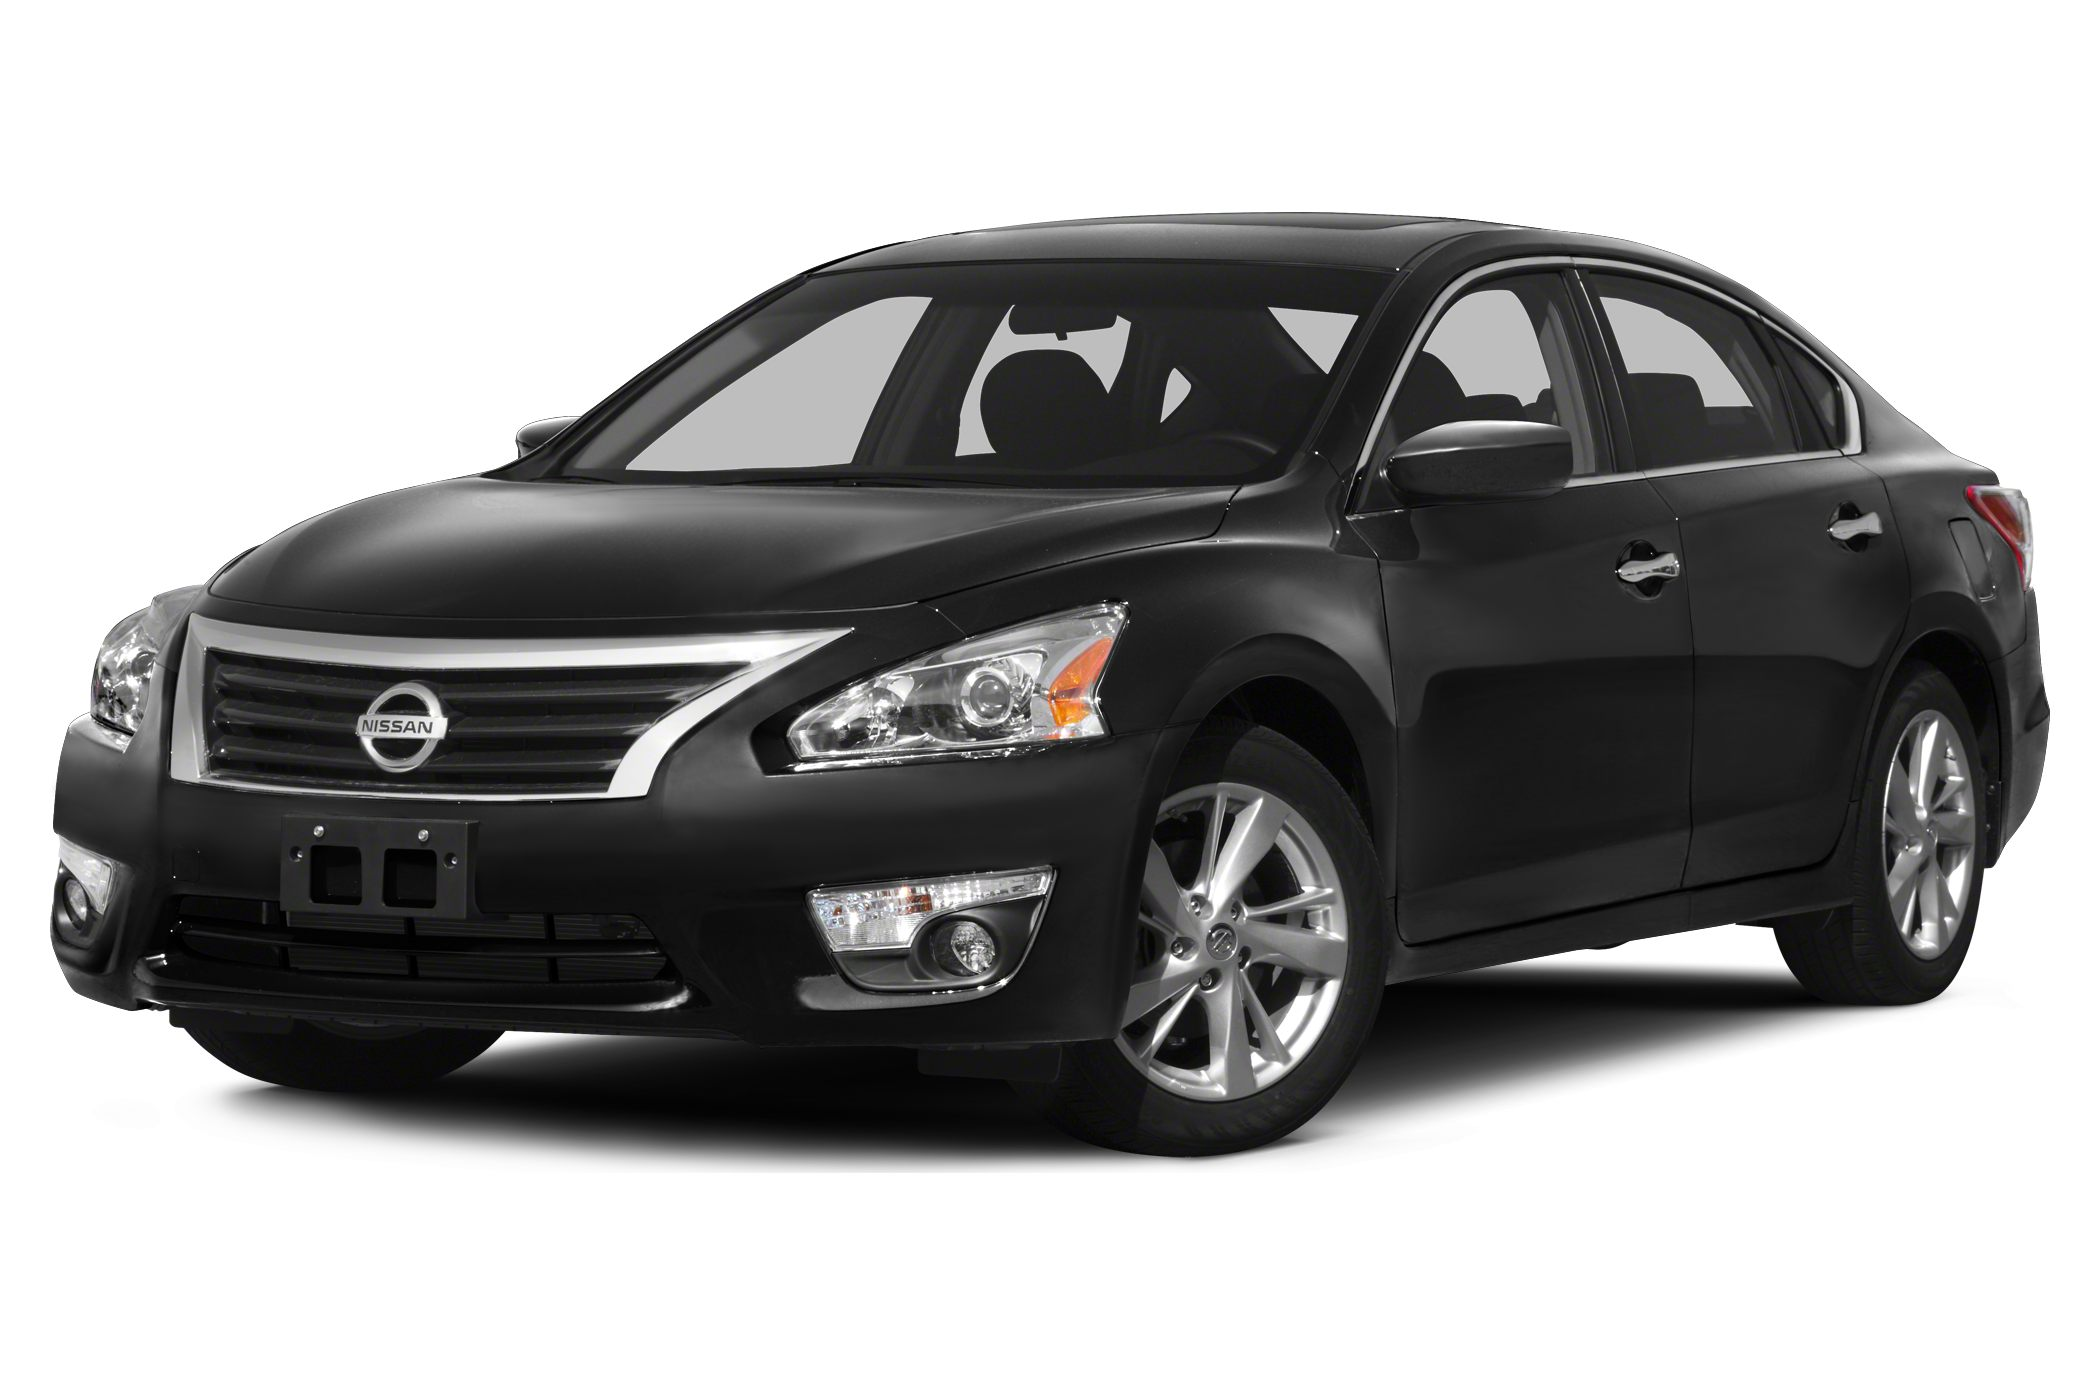 2014 Nissan Altima 2.5 SV Sedan for sale in Hawthorne for $26,090 with 13 miles.